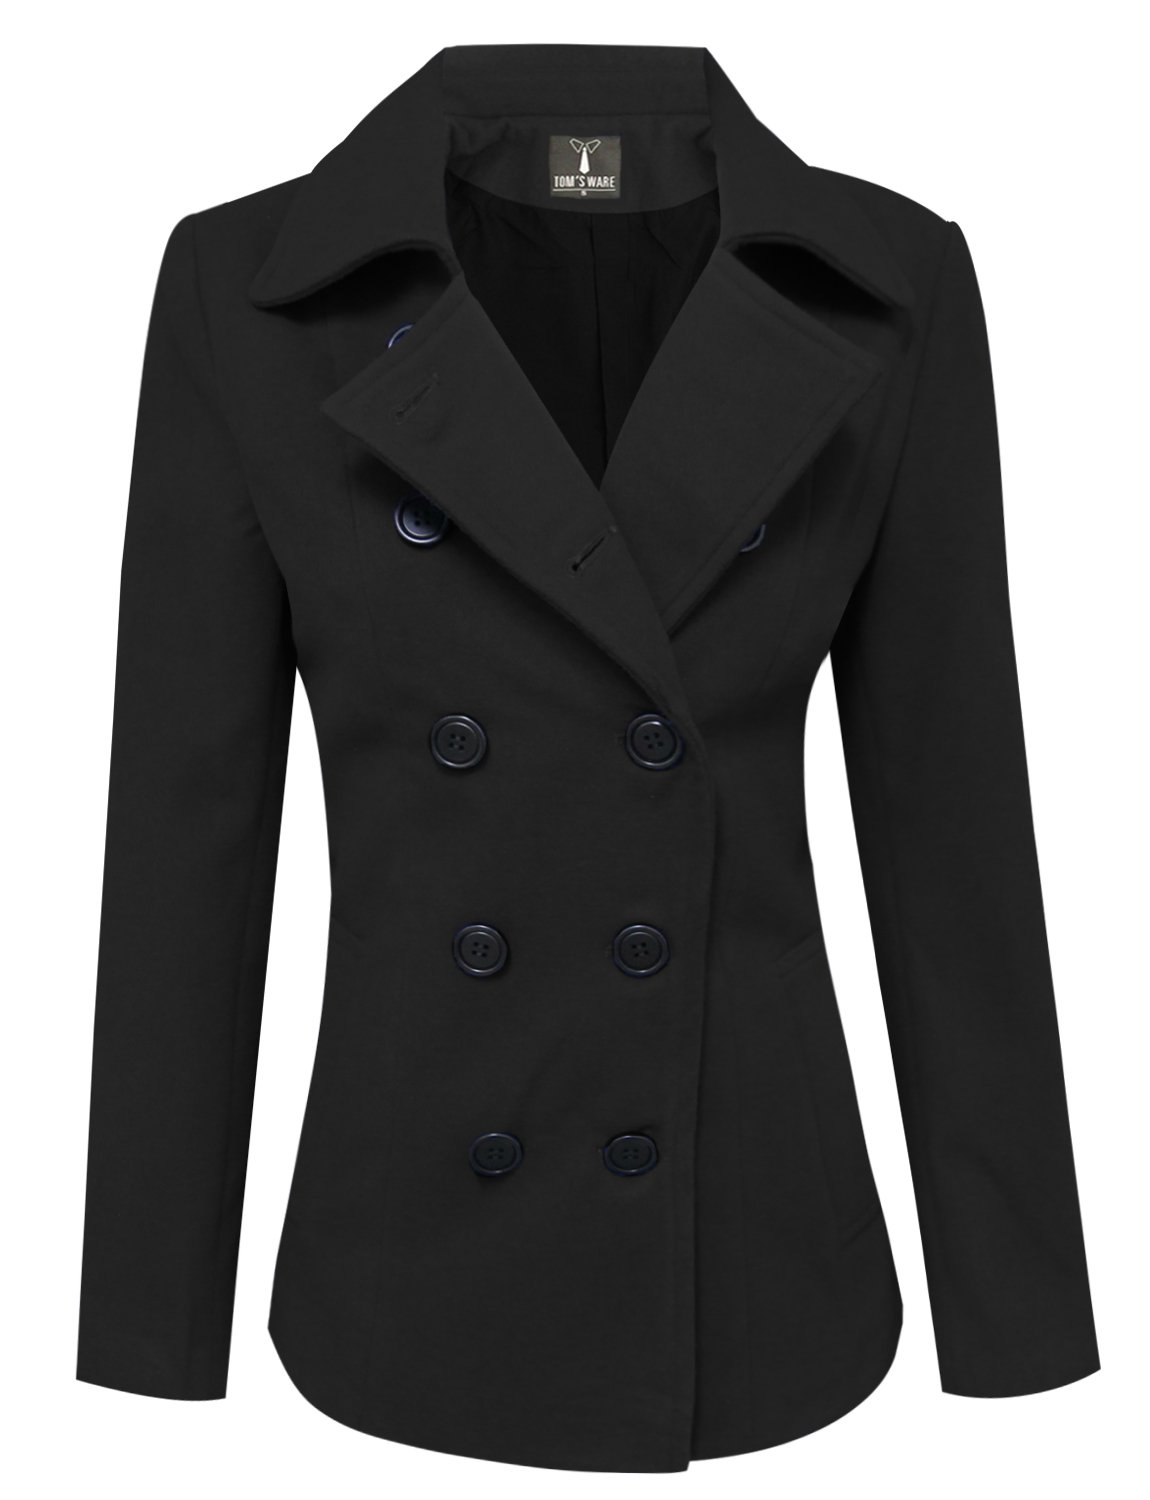 TAM Ware Womens Trendy Double Breasted Wool Pea Coat TWCWC06-BLACK-S